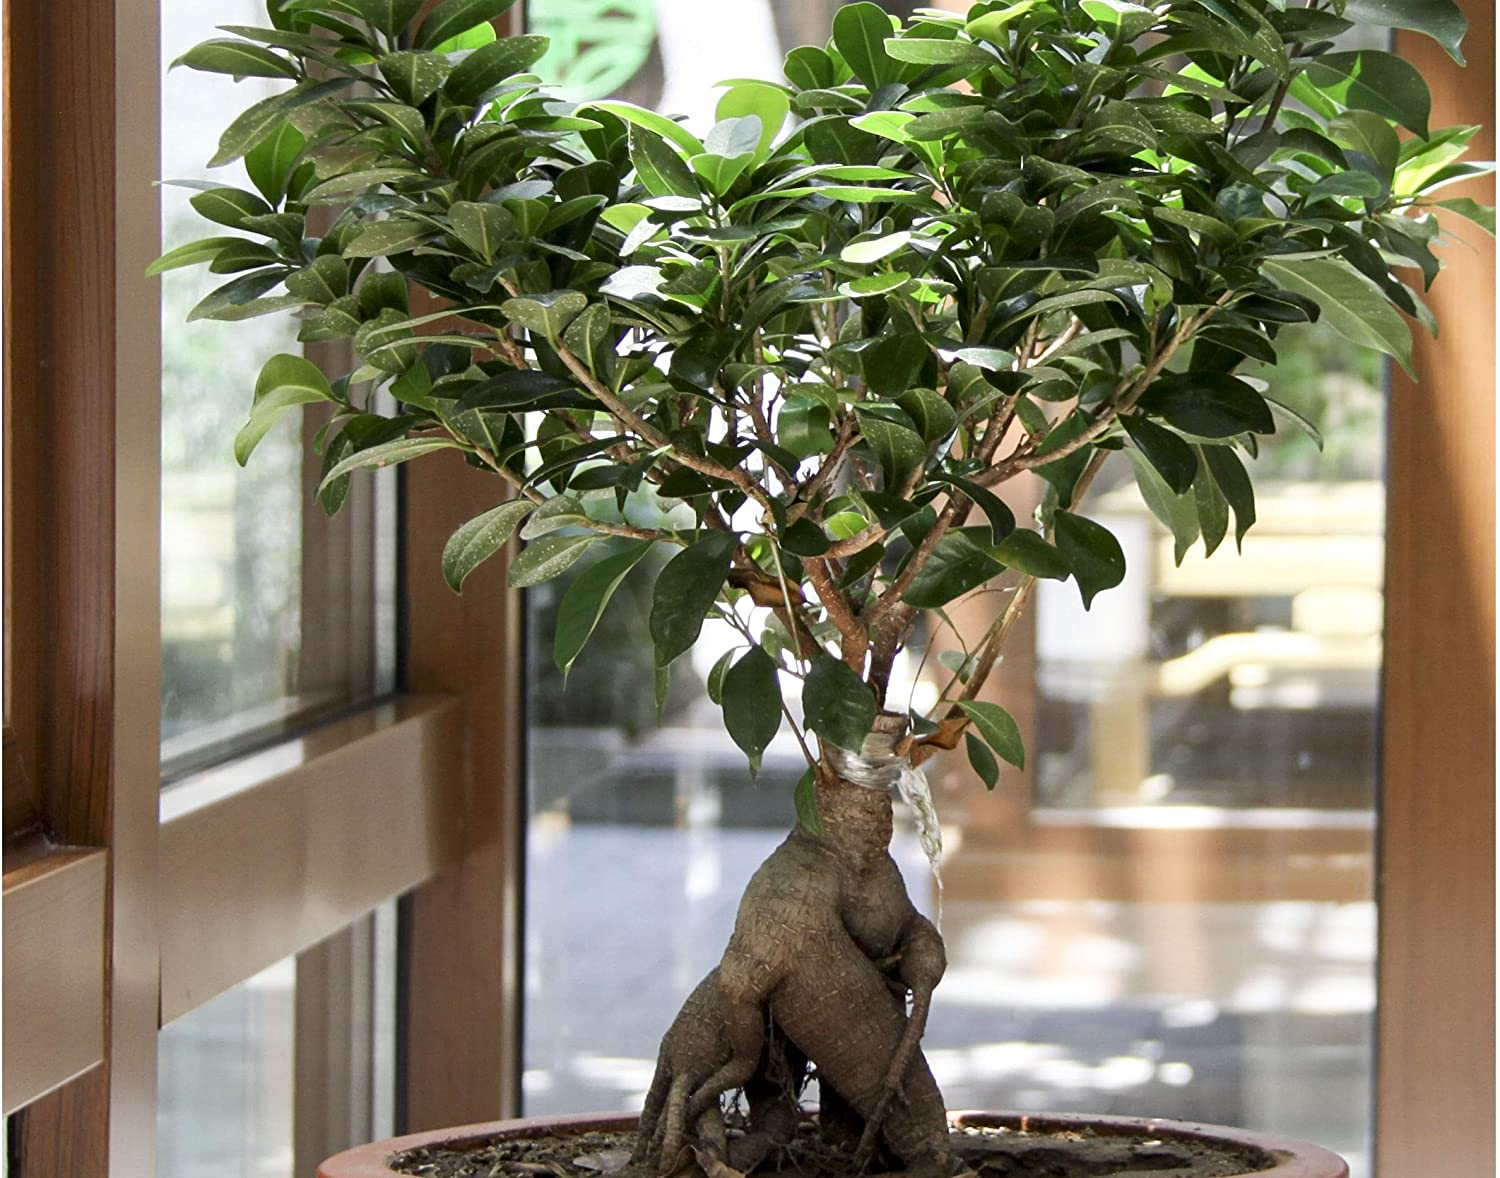 Amazon Com Fig Tree Tree 20 Seeds Tropical Plant Bonsai Or Standard Rugged Bark Cluster Fig From Tropical India Ficus Racemosa Garden Outdoor